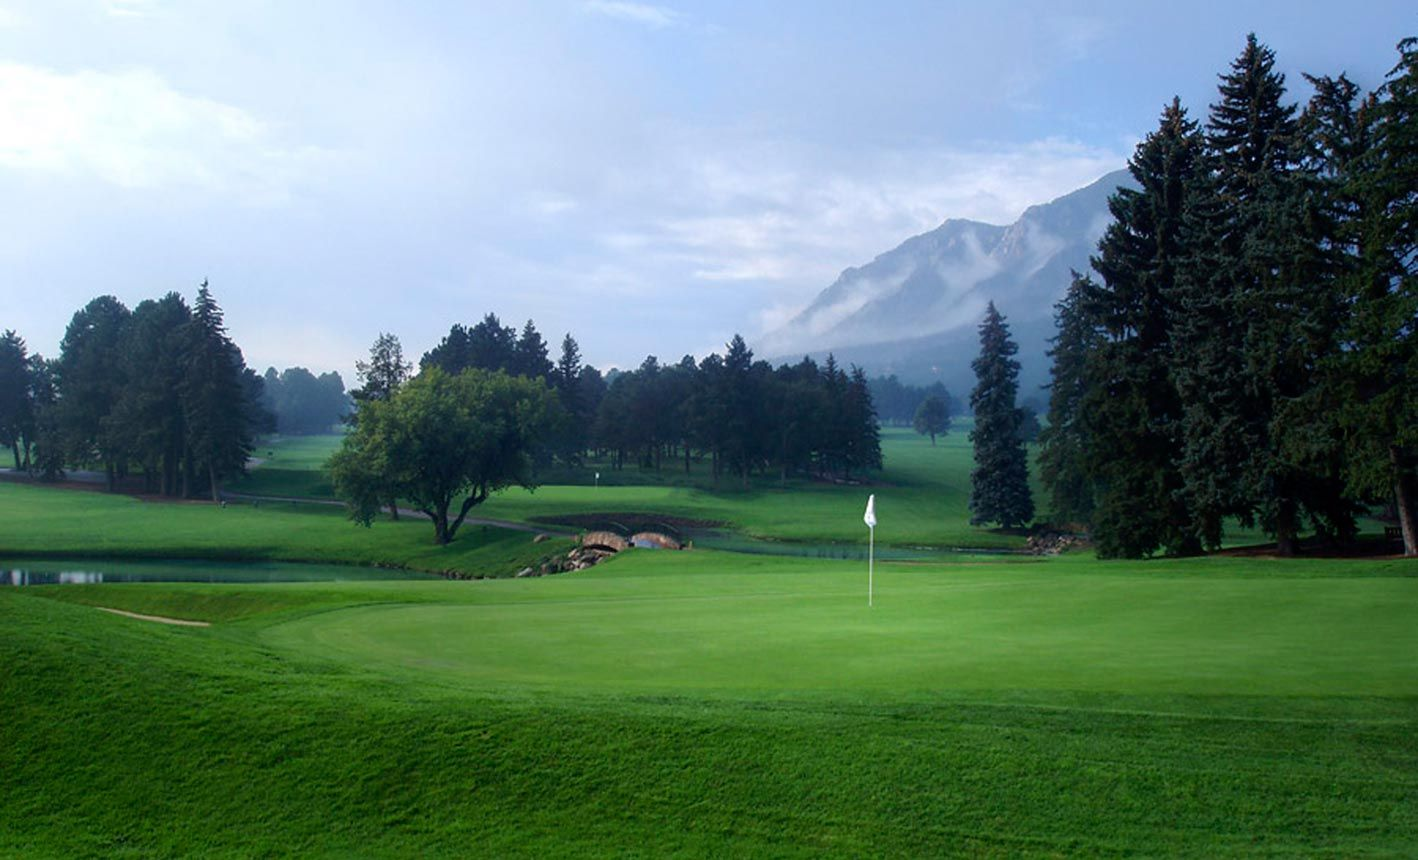 Colorado Springs Resorts The Broadmoor Golf Courses Golf Course Photography Golf Vacations